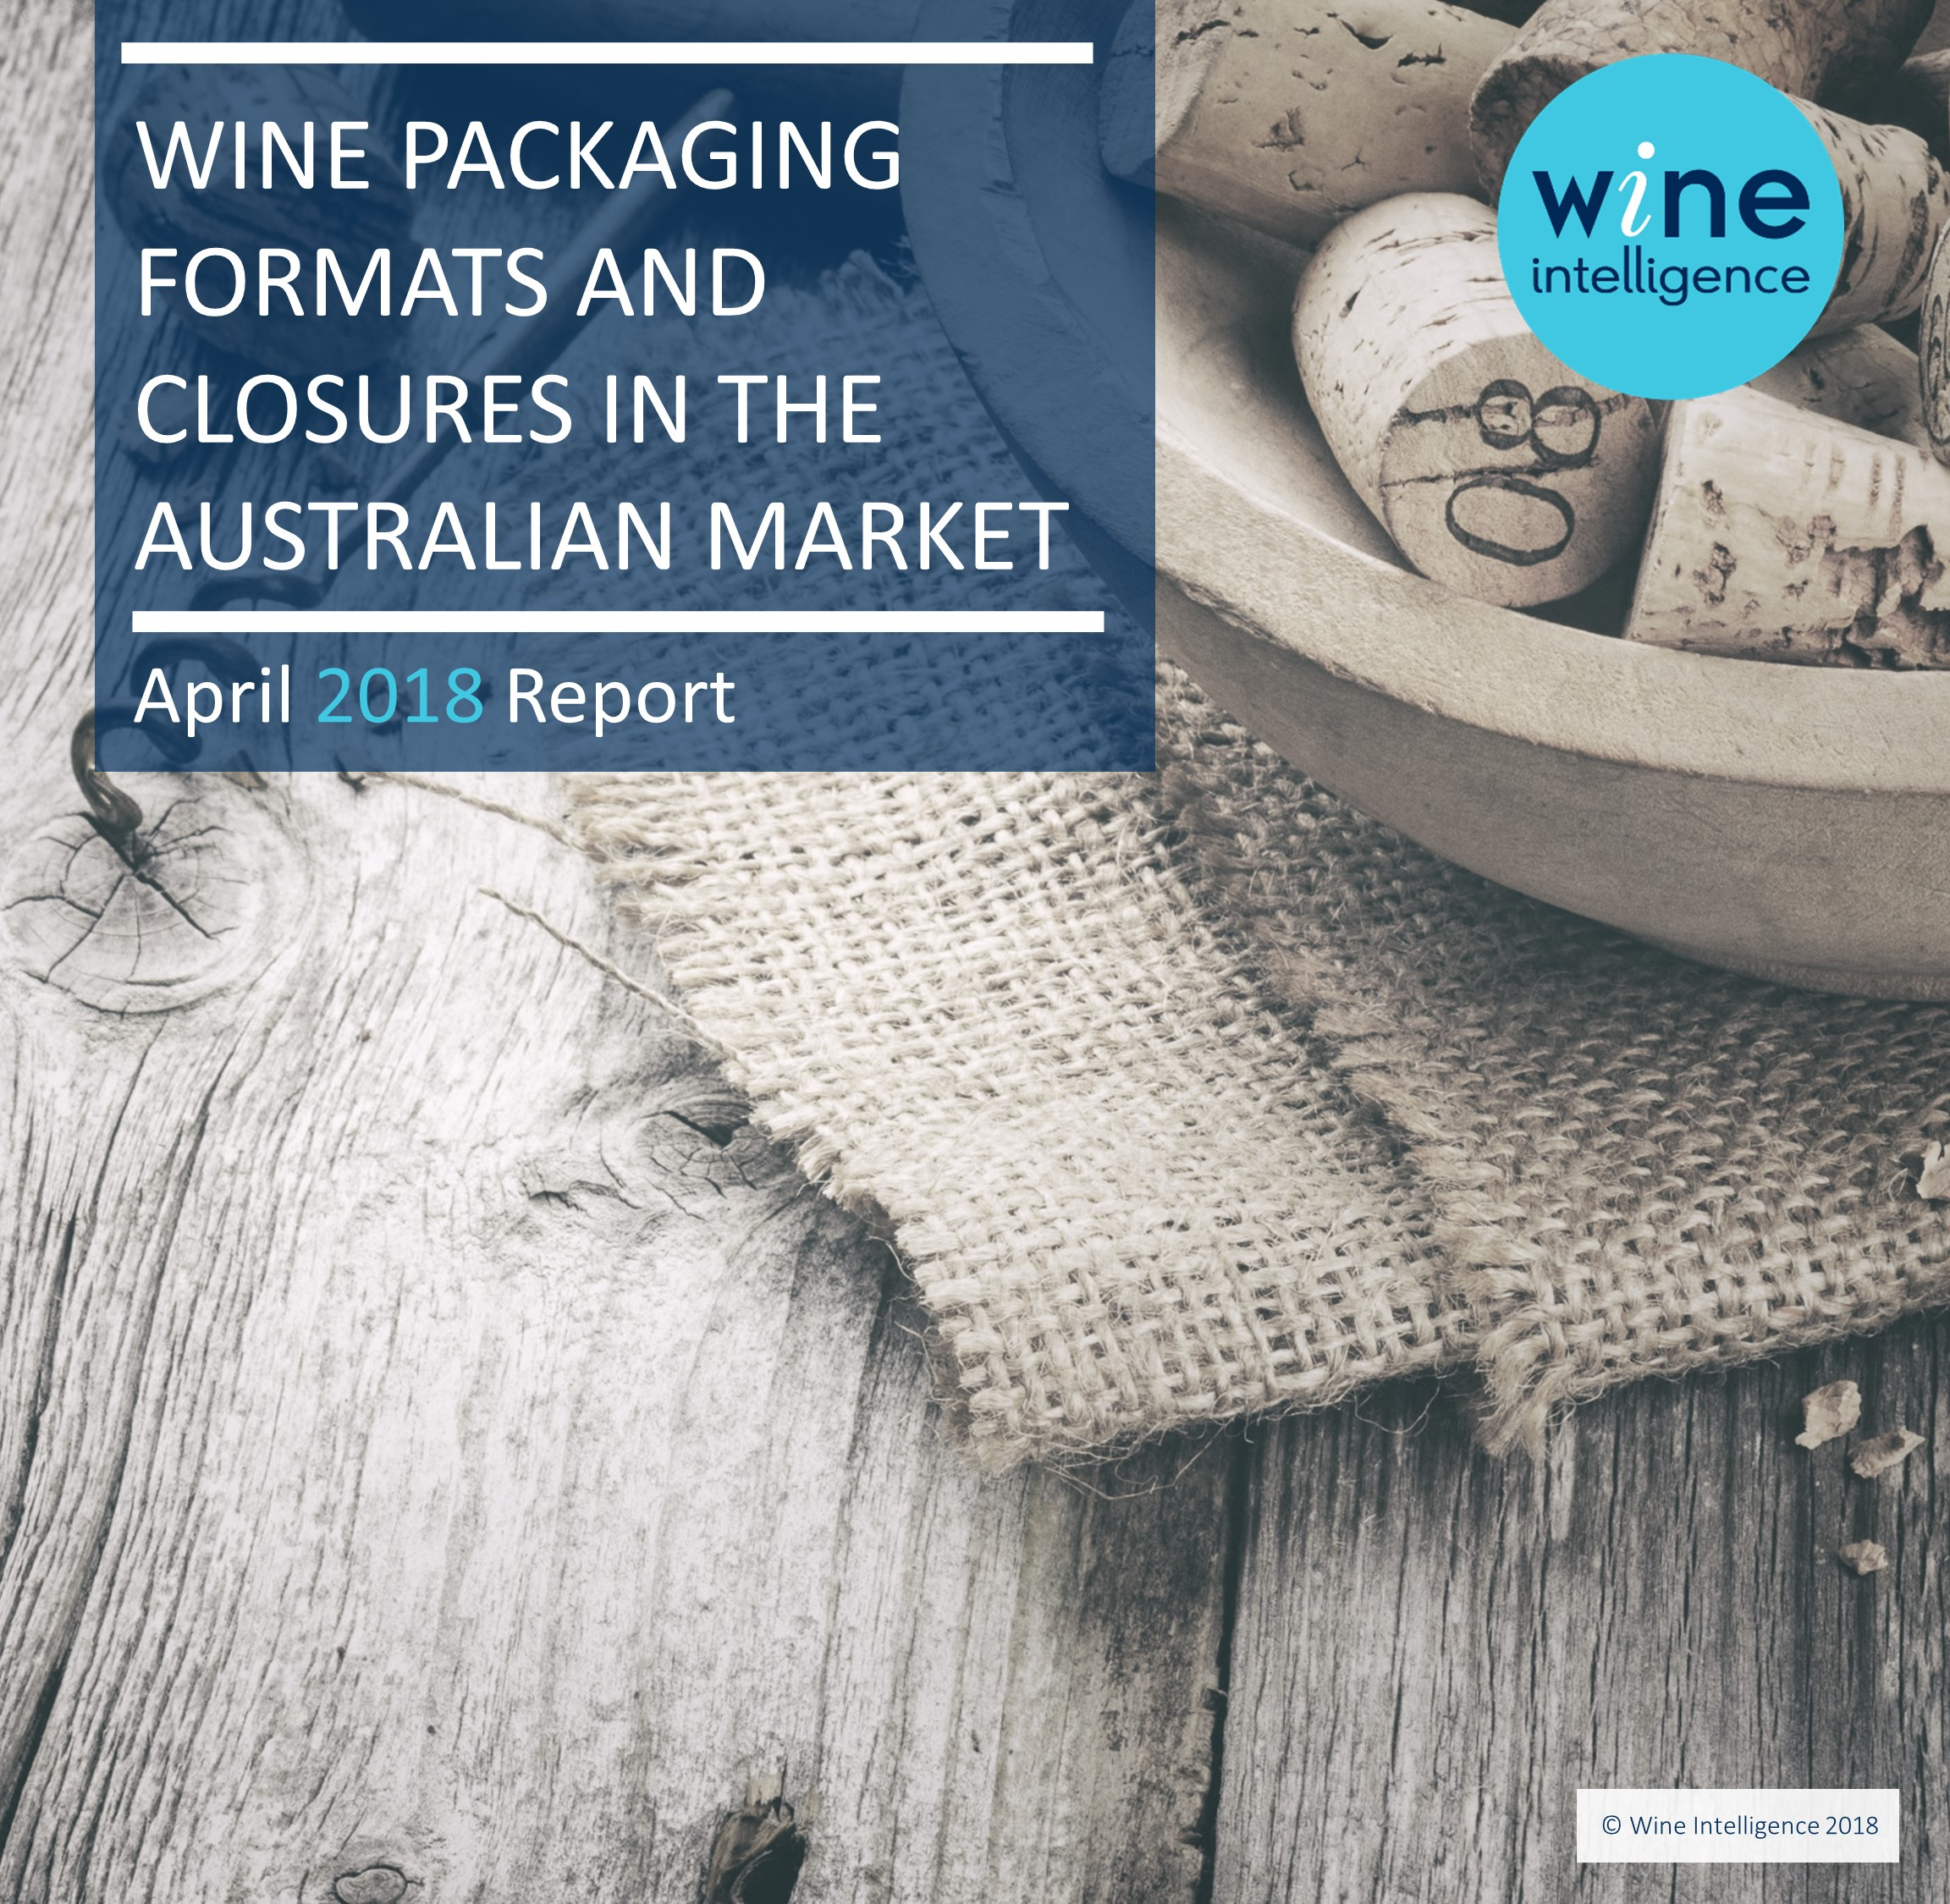 Australia Packaing Formats and Closures in the Australian Market 2018 - Labels - how does yours compare?